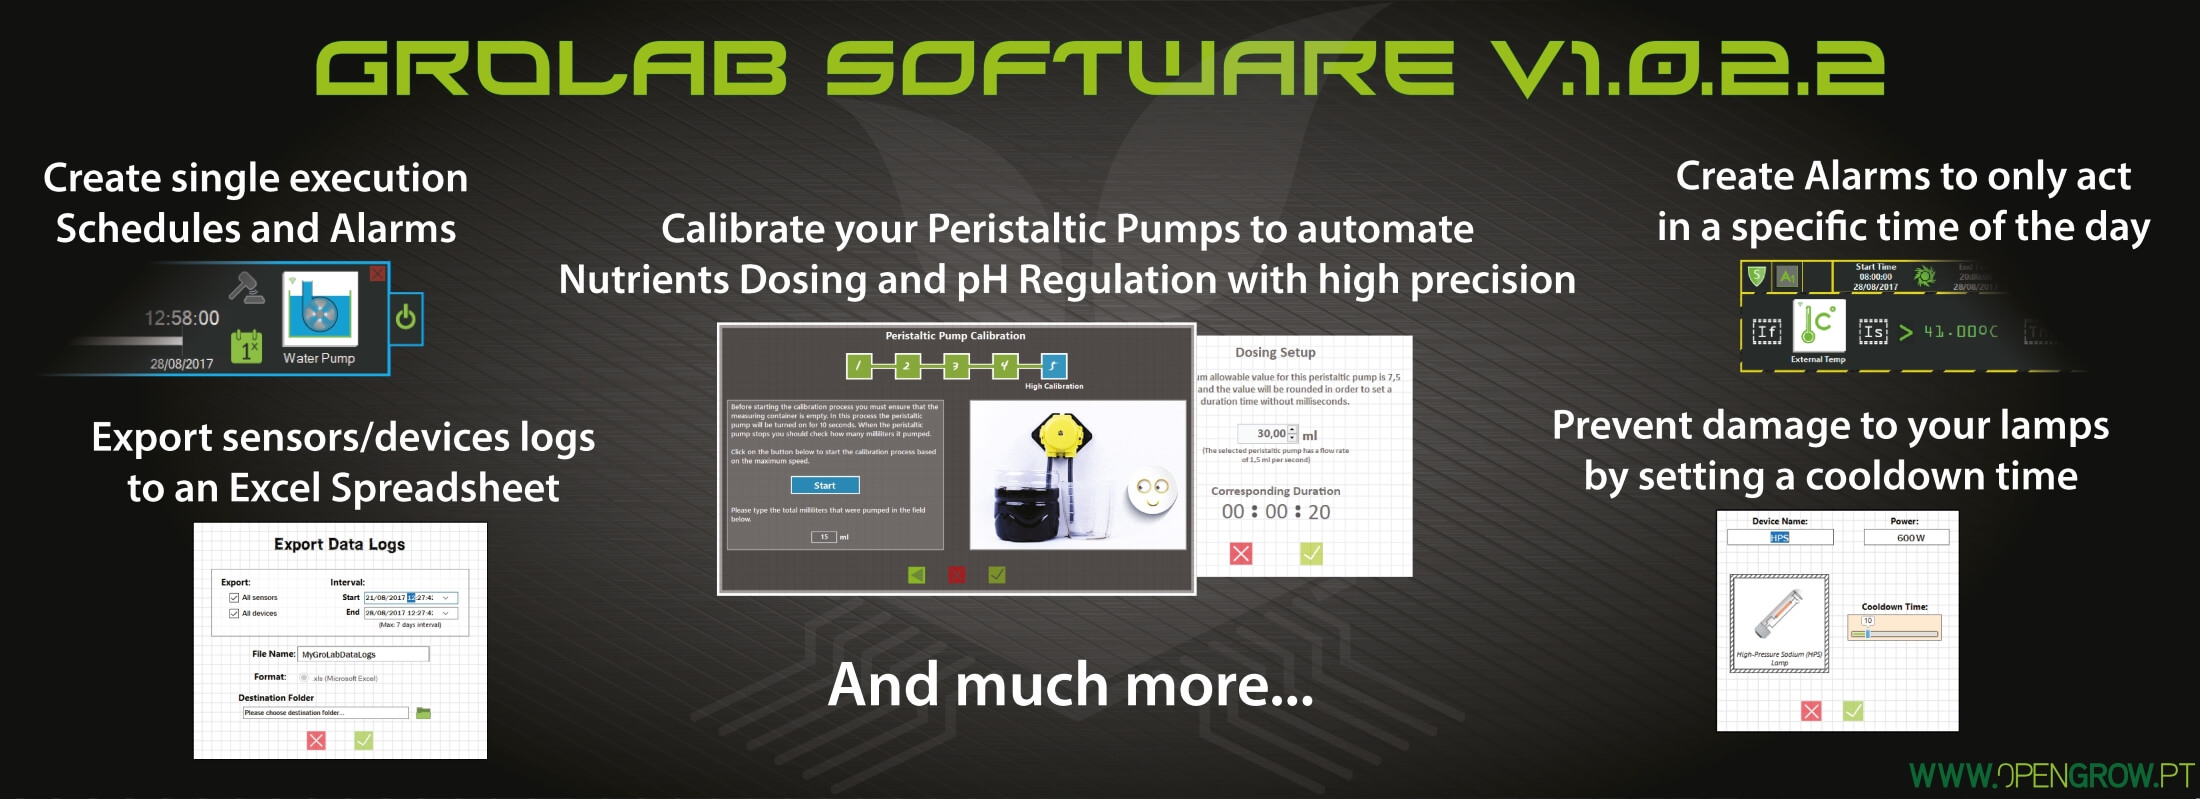 GroLab™ Software v1.0.2.2 update highlights - custom time, day, night alarms operation modes; peristaltic calibration, improving nutrients dosing and pH correction; export sensors and devices logs to file; customizable cooldown time to prevent damage to sensitive devices (lamps).